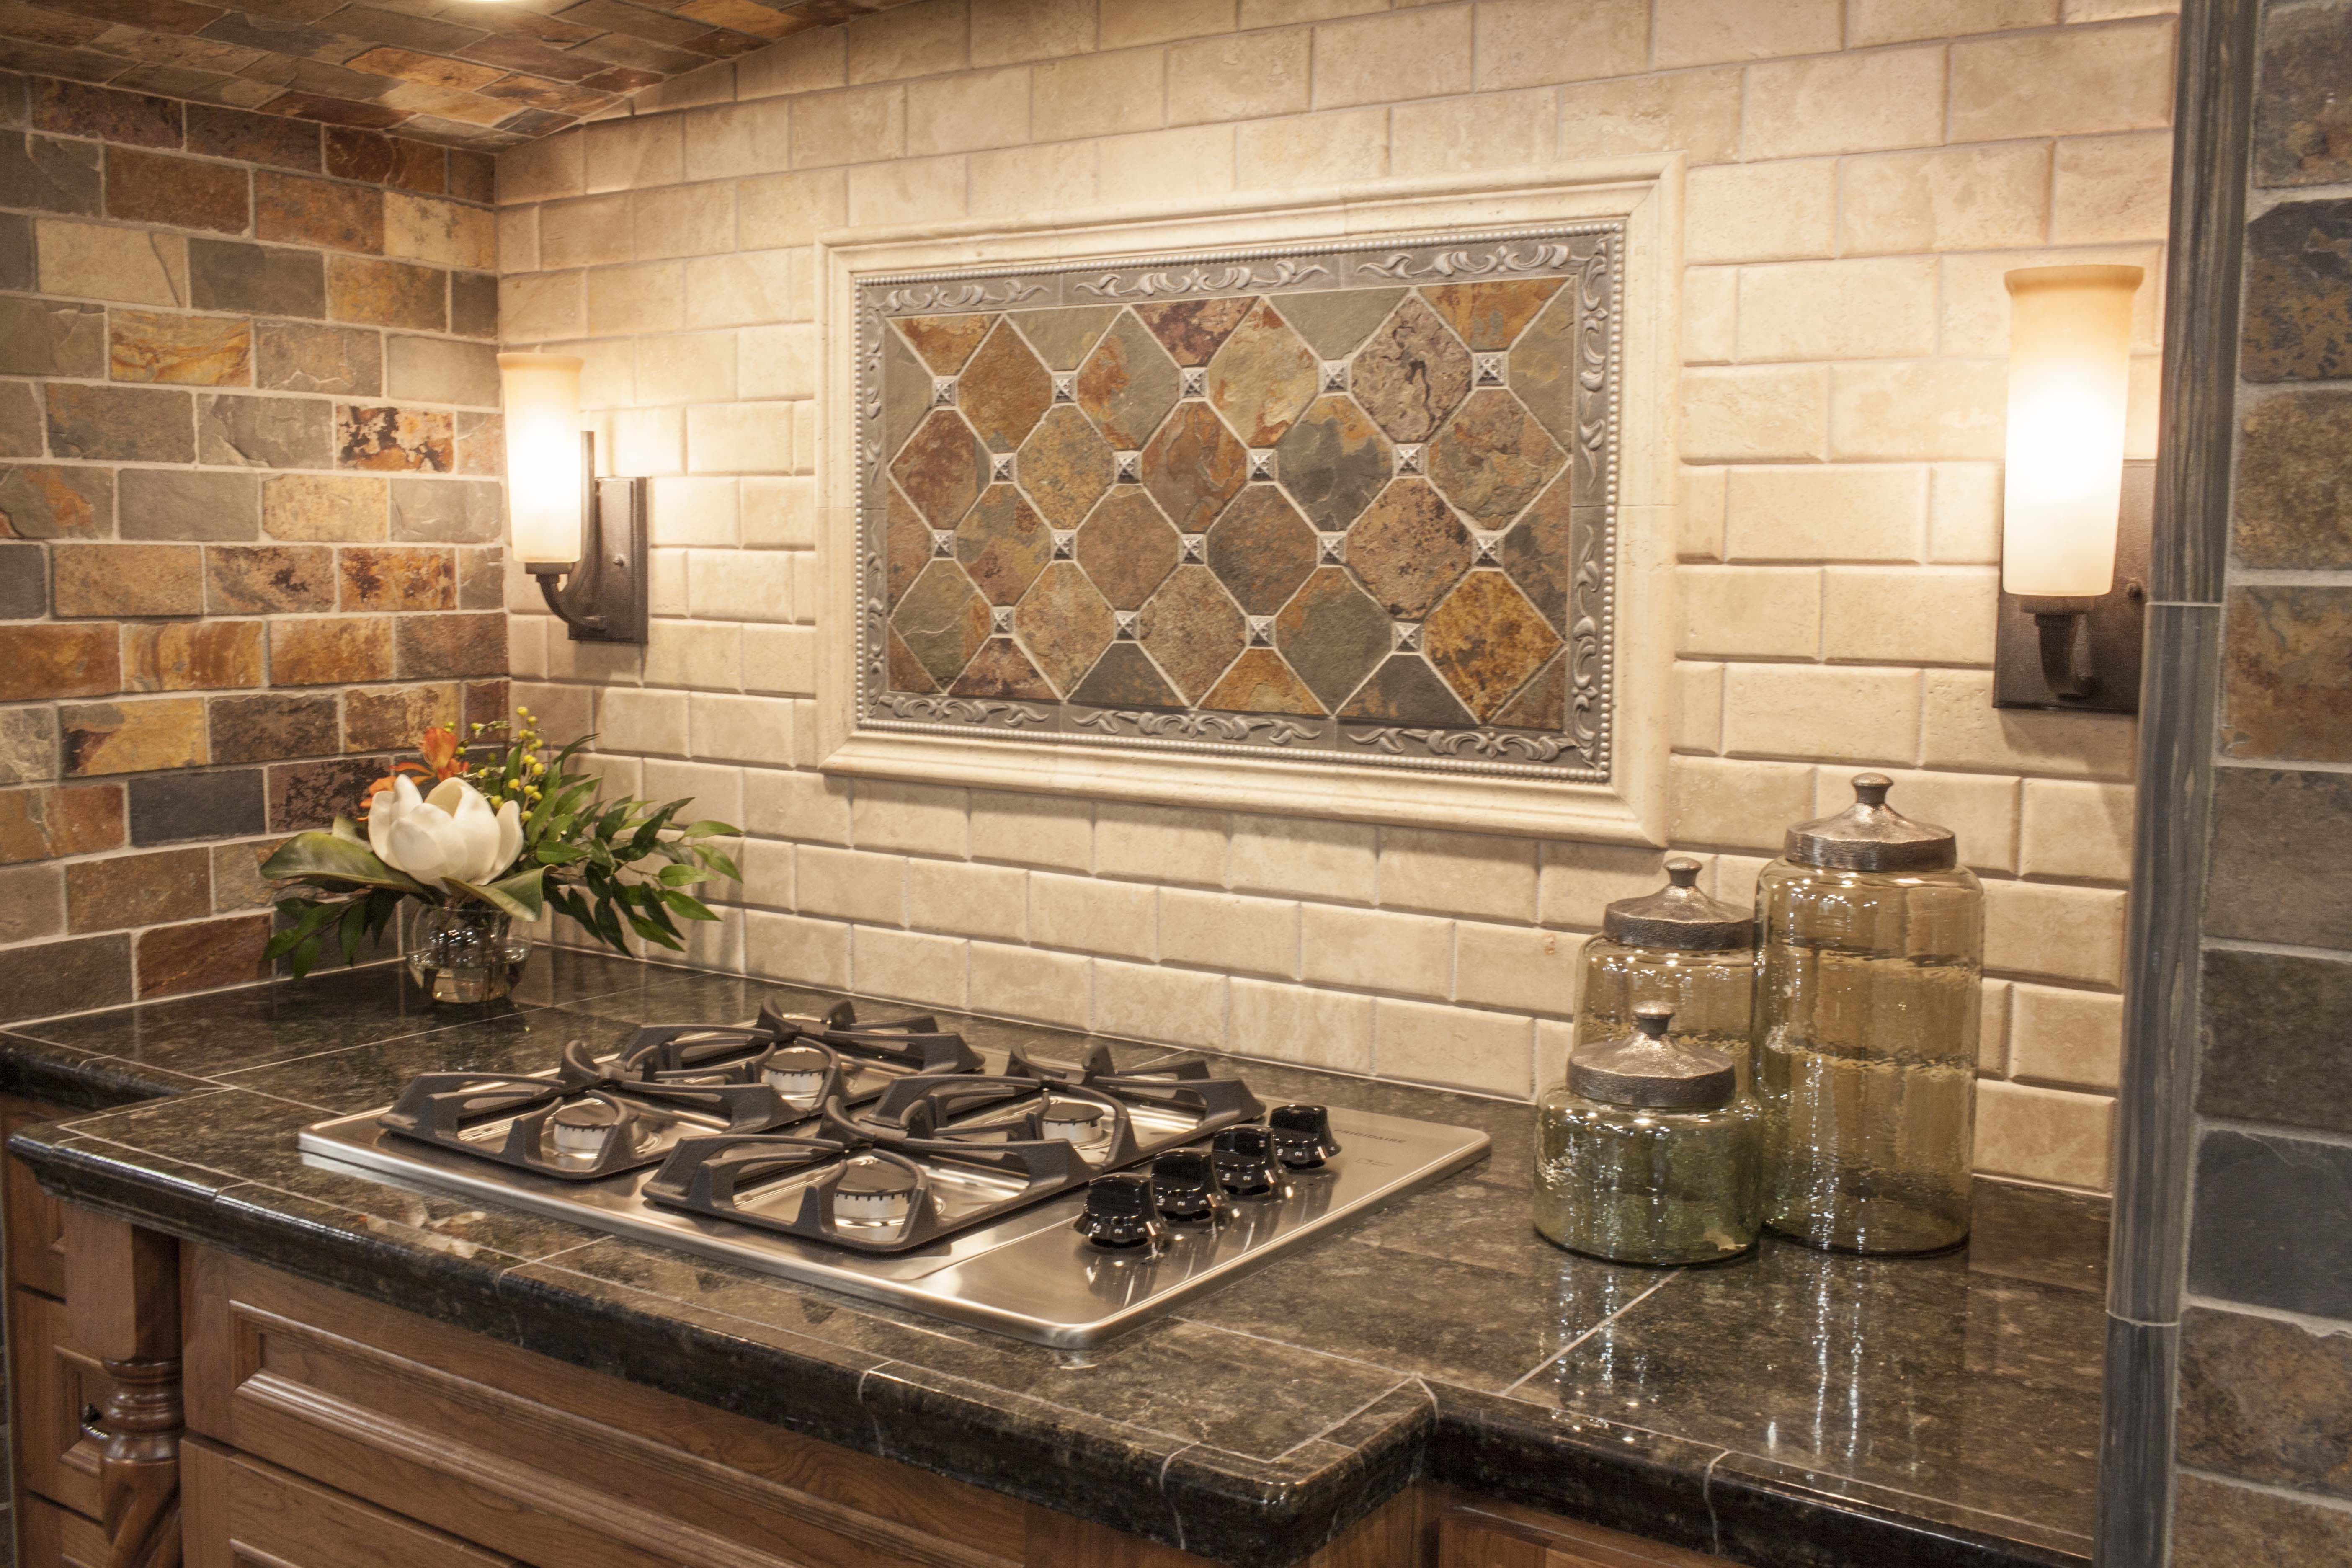 Modern Yet Rustic This Hearth Style Backsplash Features Slate Subway And Pillowed Travertin Rustic Kitchen Backsplash Modern Kitchen Backsplash Rustic Kitchen